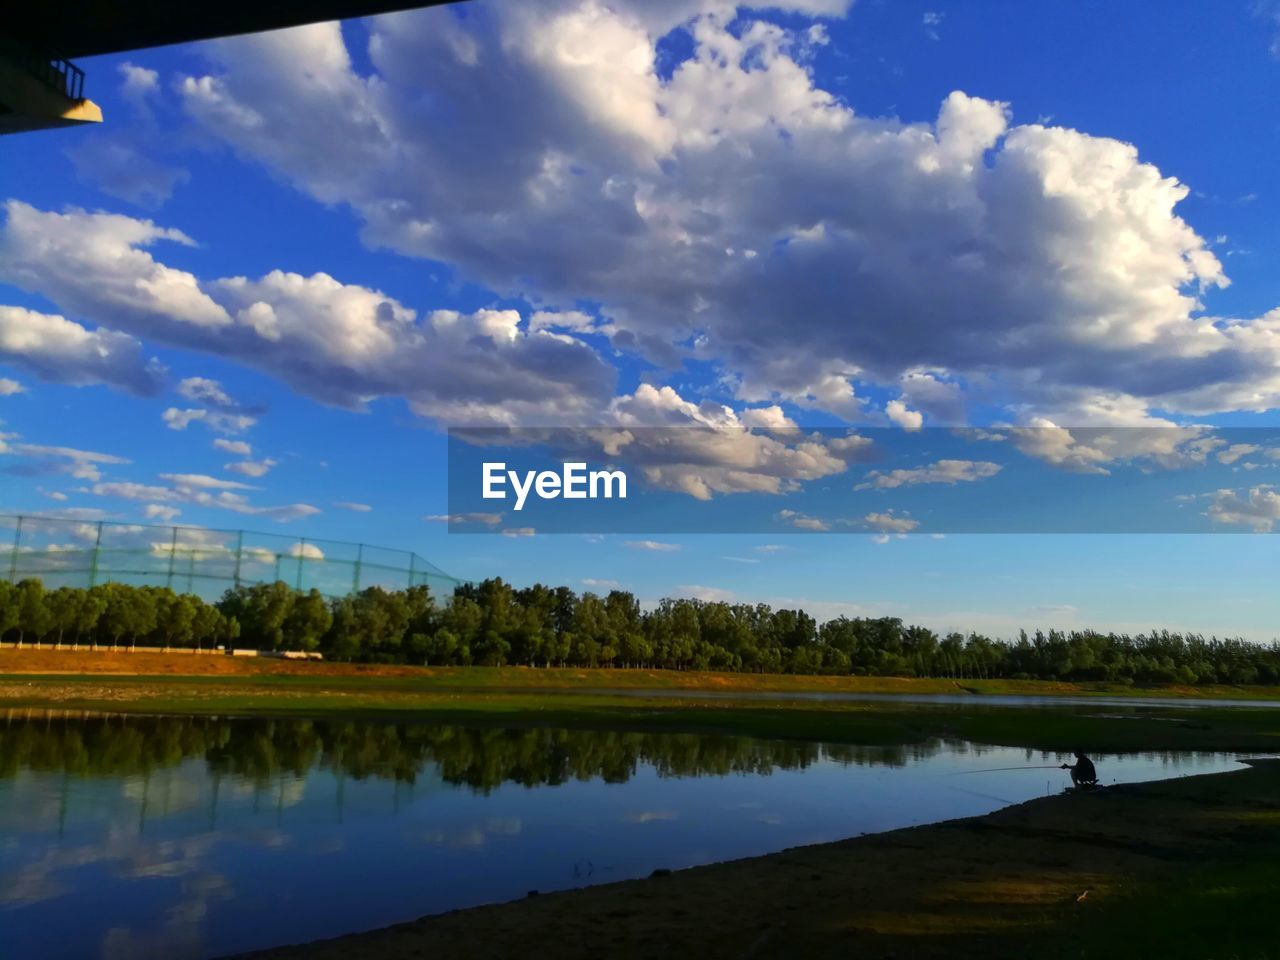 cloud - sky, sky, water, reflection, tranquility, nature, beauty in nature, lake, tranquil scene, tree, plant, scenics - nature, landscape, outdoors, land, environment, day, idyllic